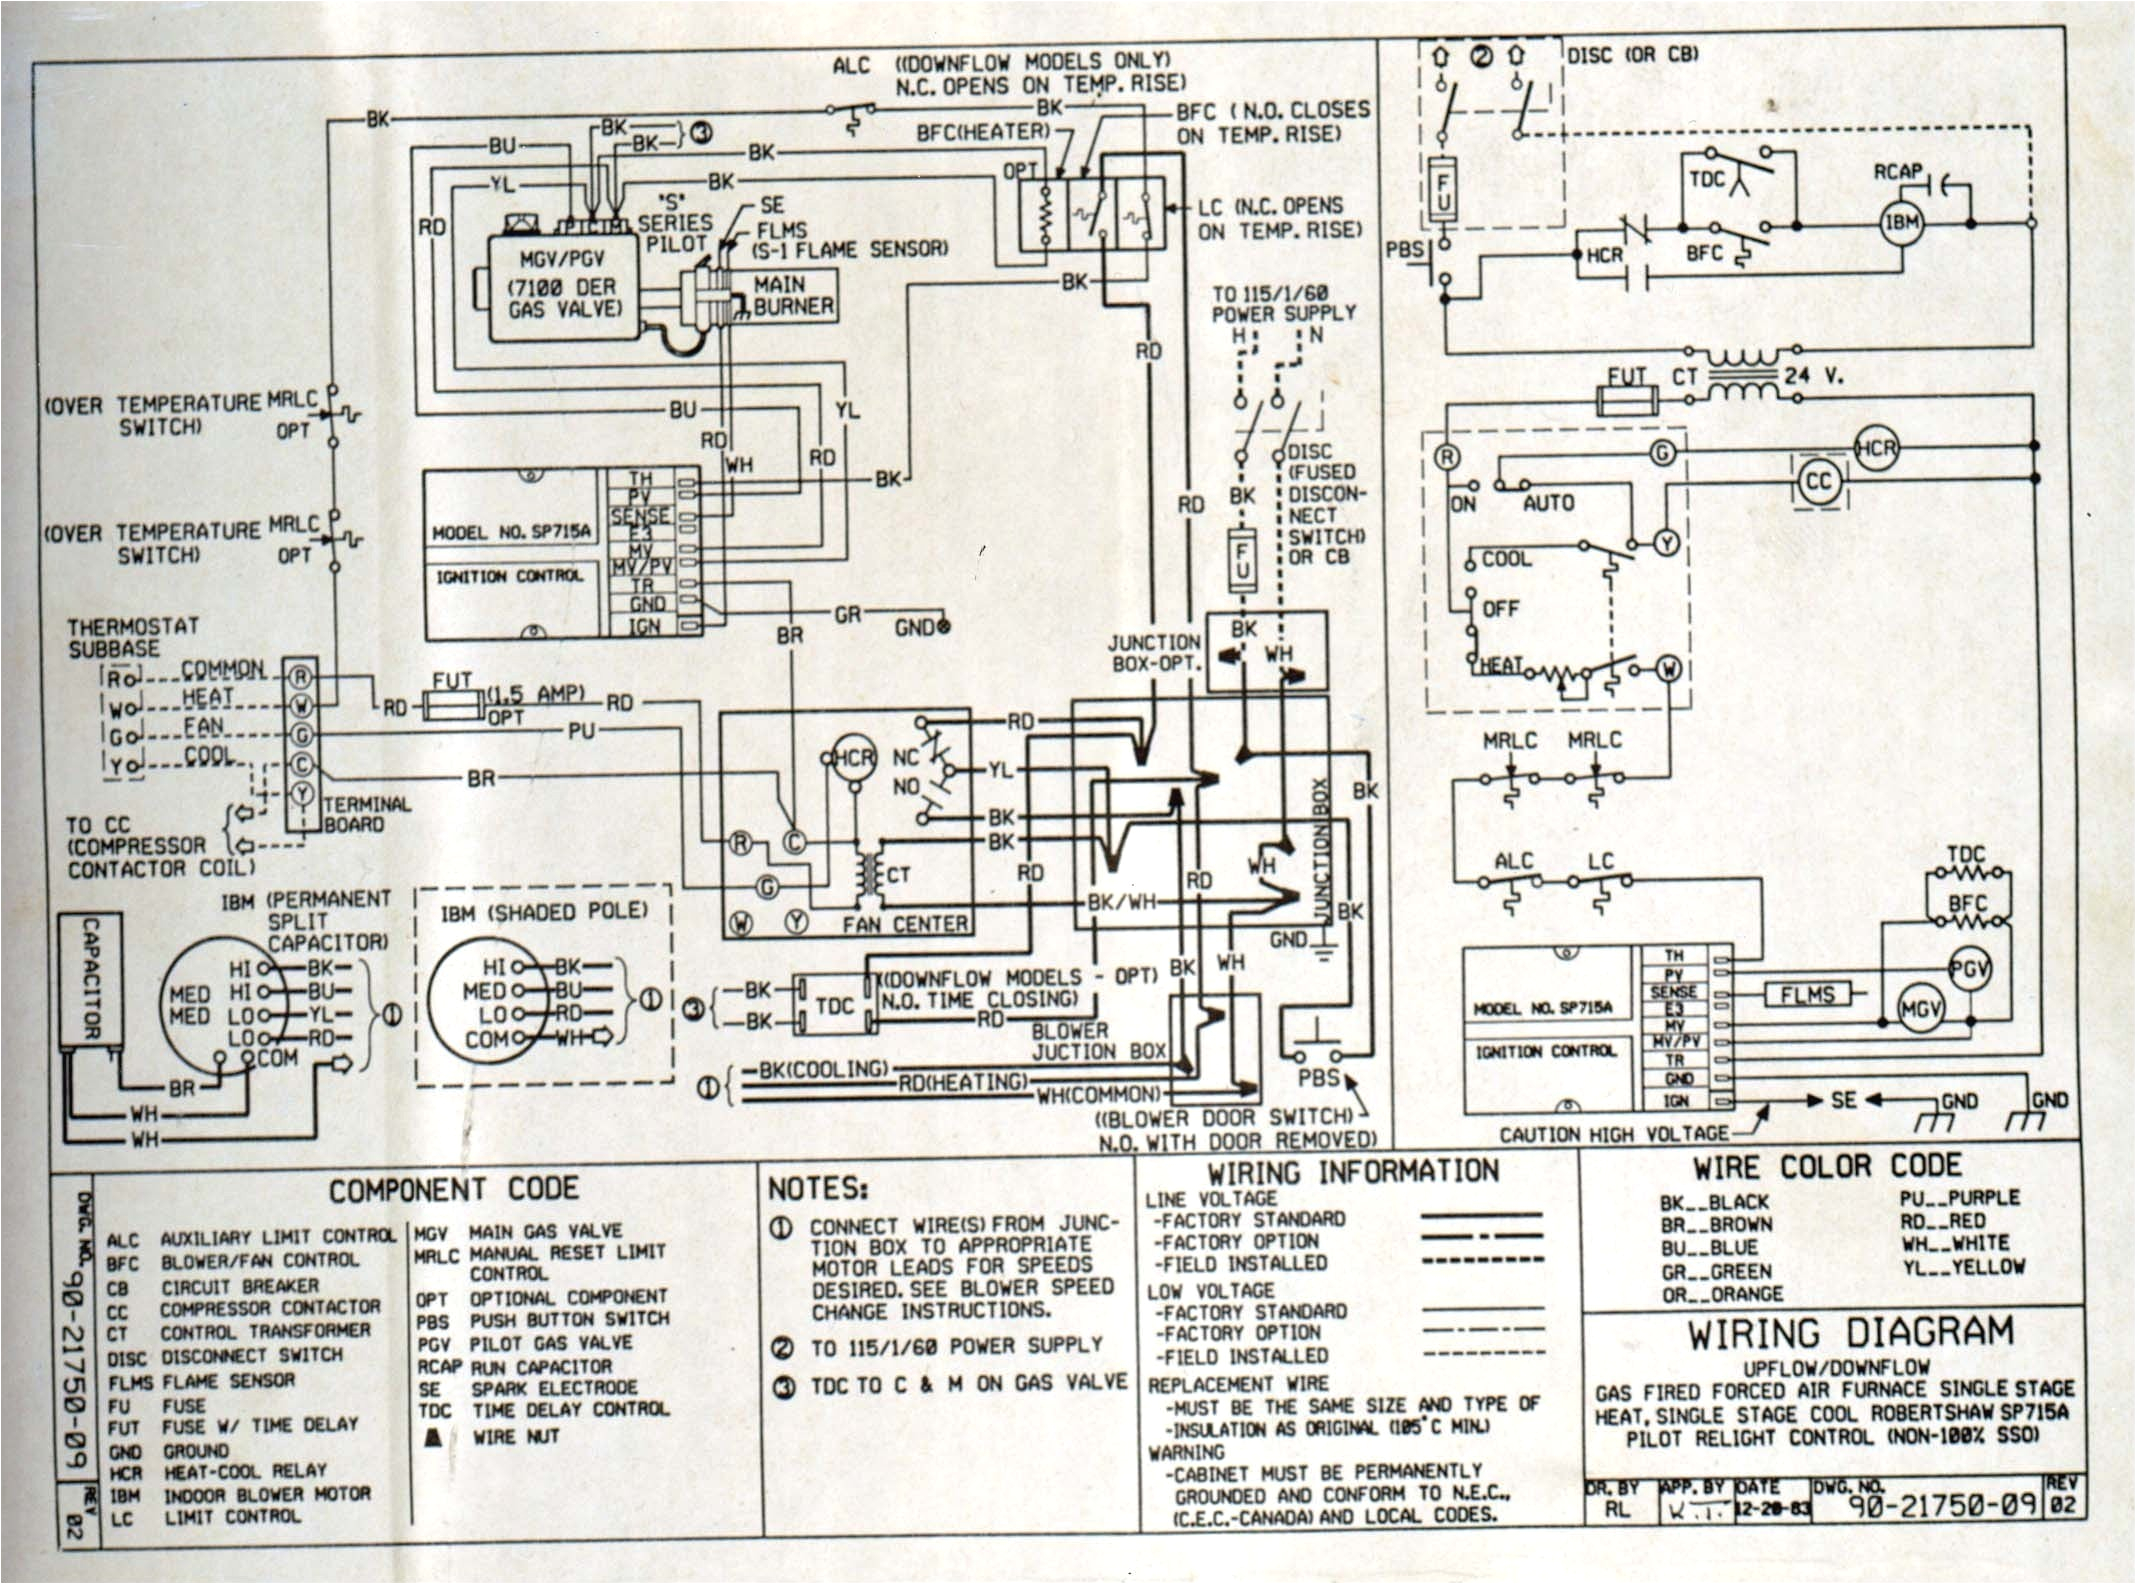 a typical furnace wiring schematic for gas wiring diagram show gas furnace wiring ssu wiring diagram